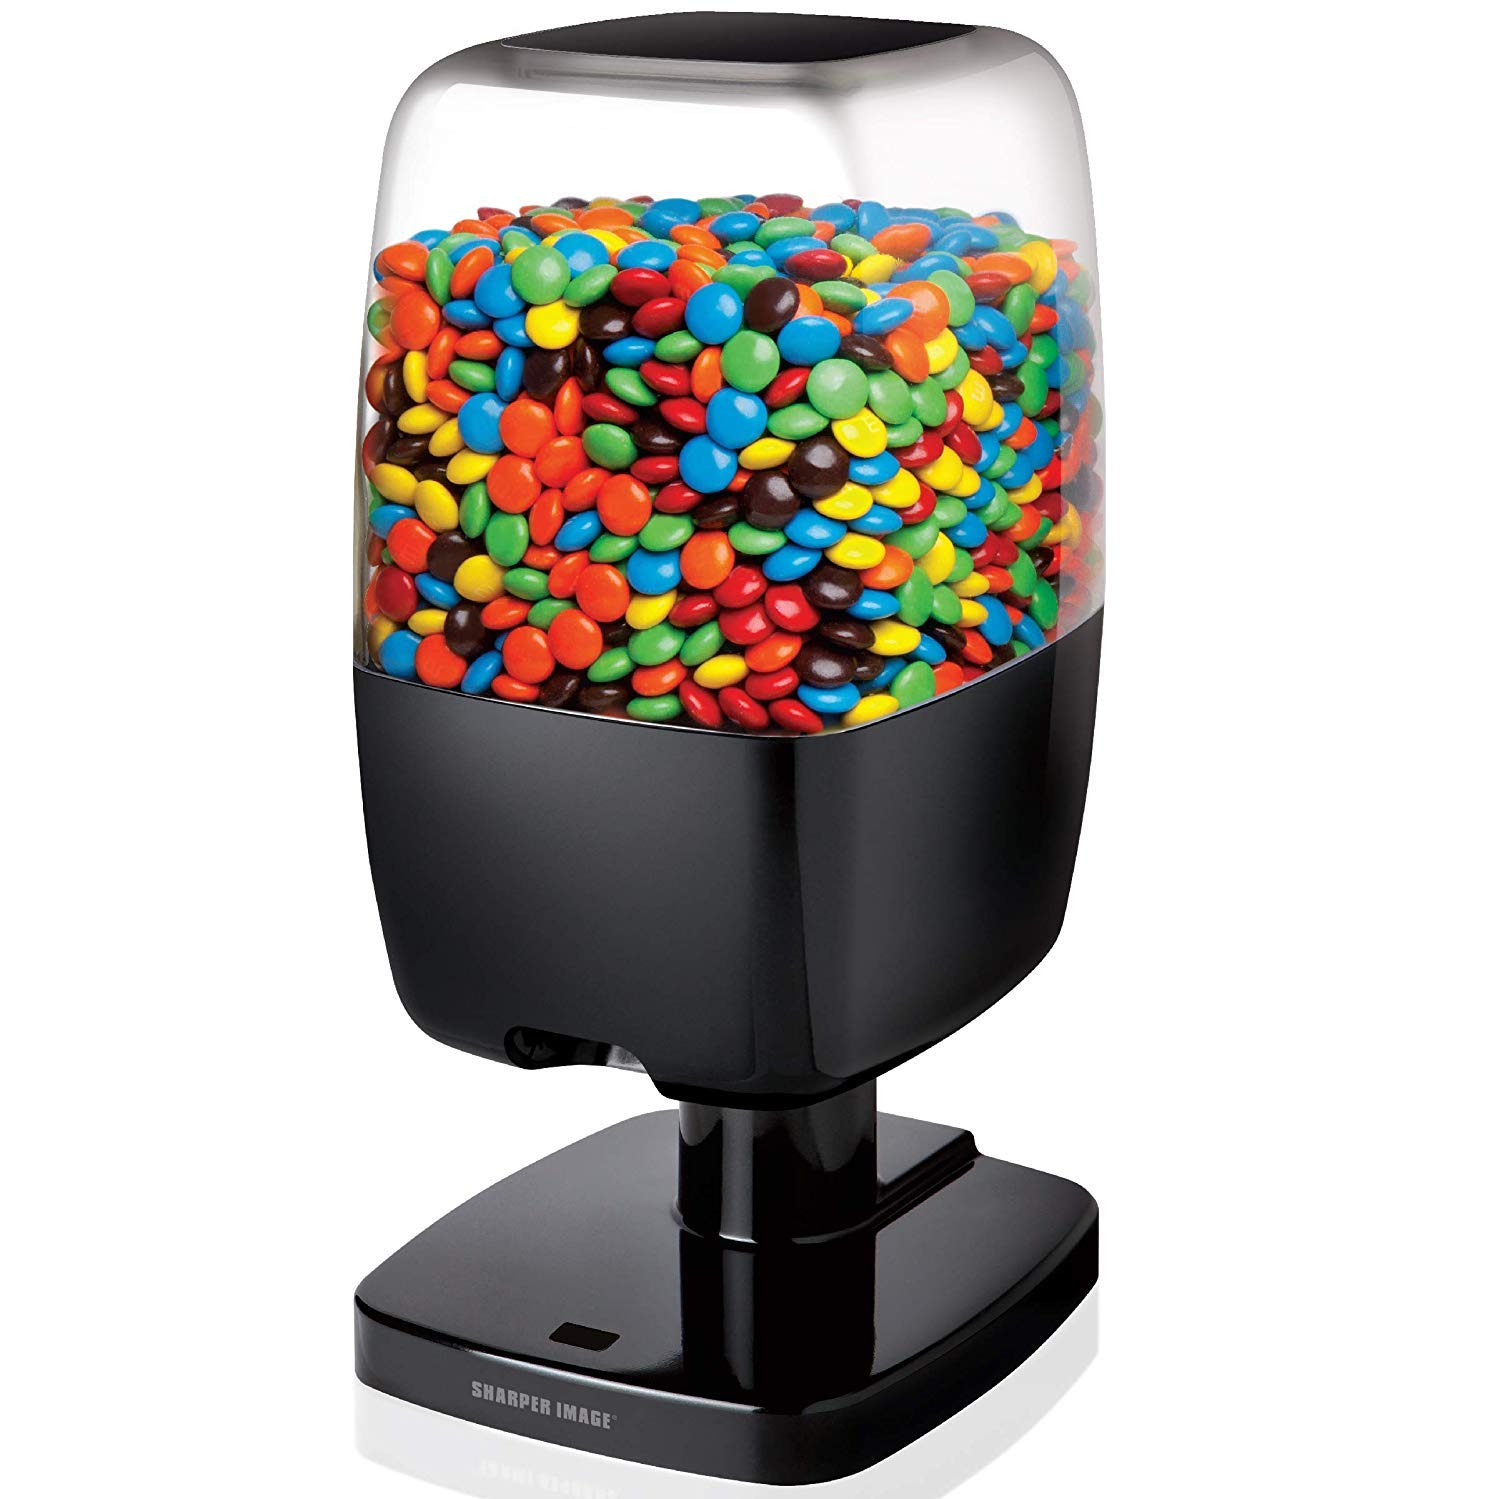 Activated Dispenser Gumballs Touchless Hands Free